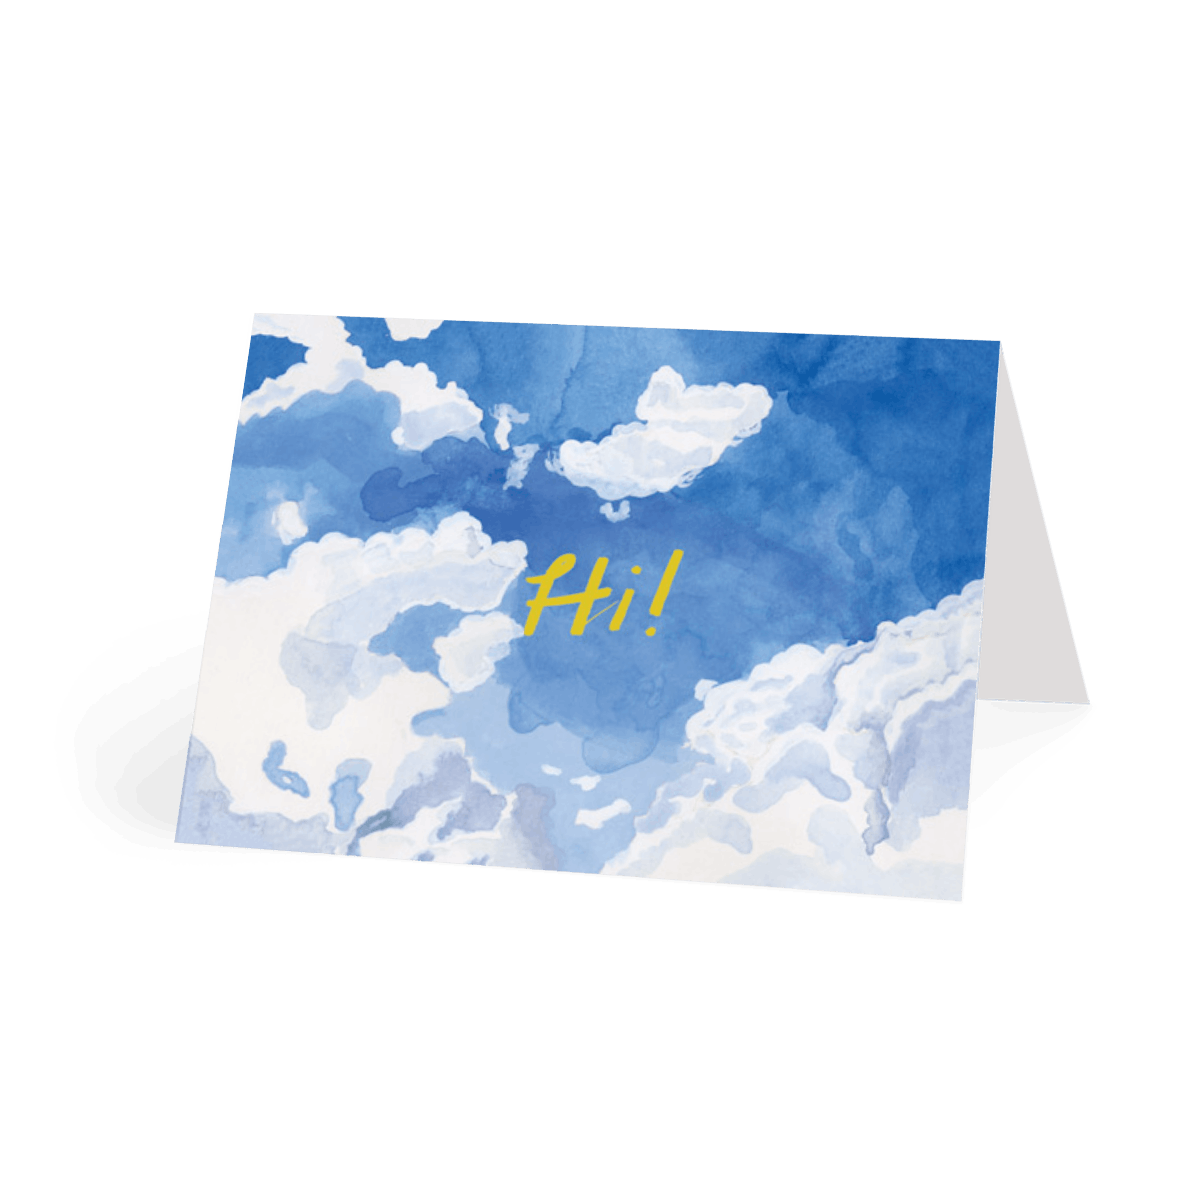 Https%3a%2f%2fwww.papier.com%2fproduct image%2f16873%2f14%2fhi afternoon sky 4439 front 1485259191.png?ixlib=rb 1.1